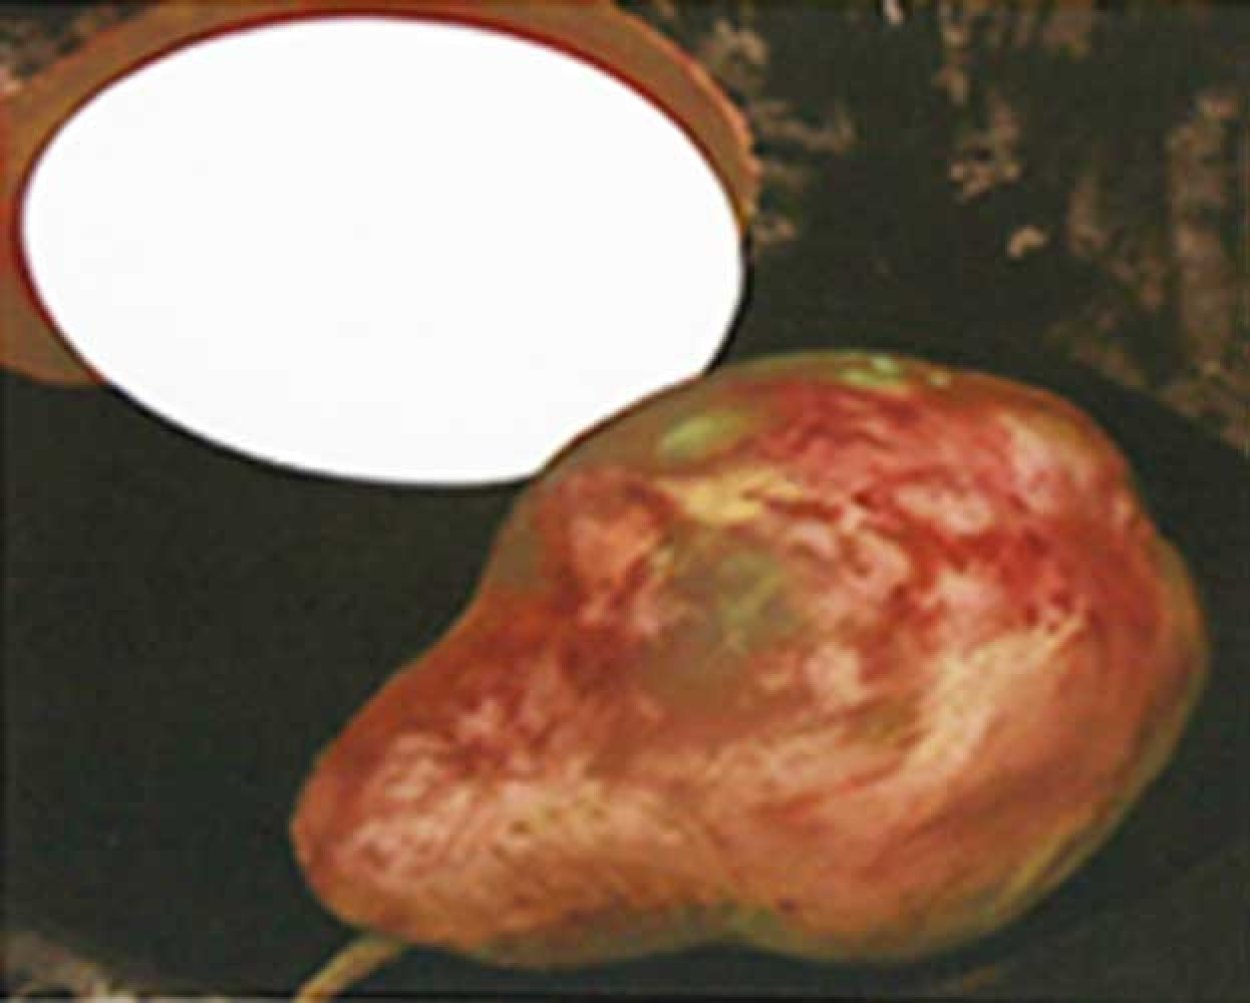 2 Pears, a Lemon, and a Egg 1994 Limited Edition Print by Donald Sultan